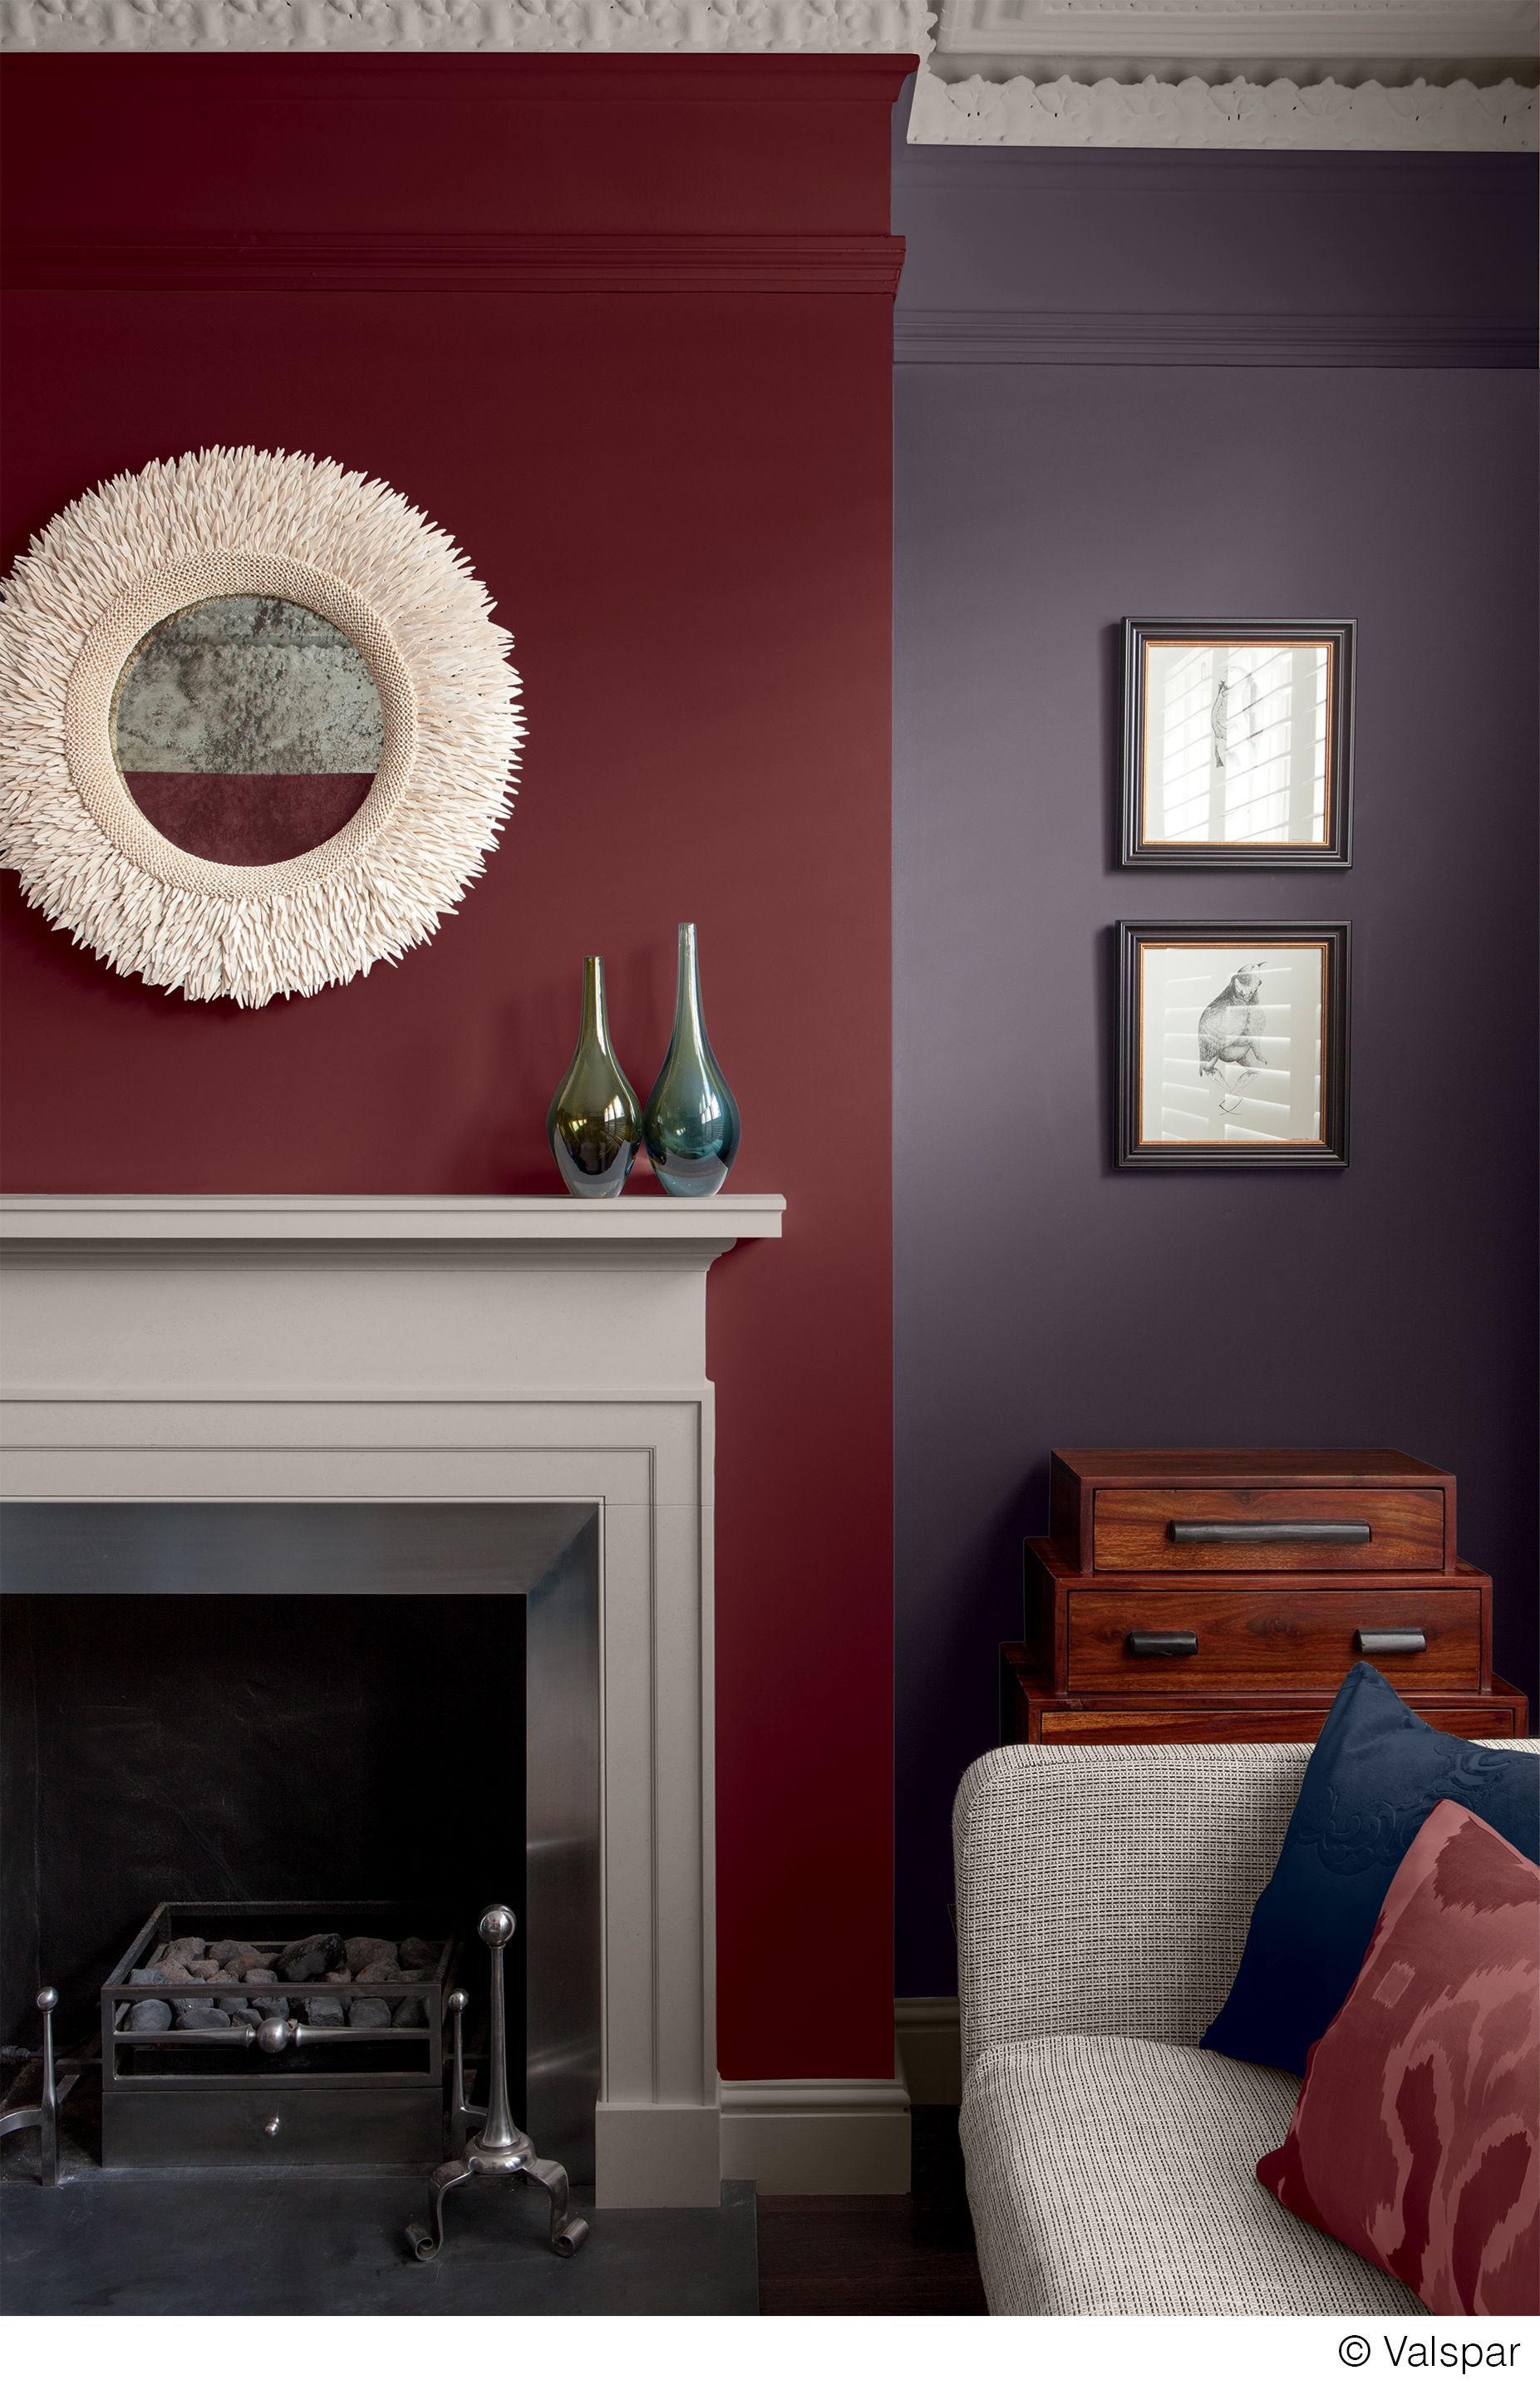 Bedroom Paint Ideas Lowes this mix of colors and textures makes for a cozy, comfortable room